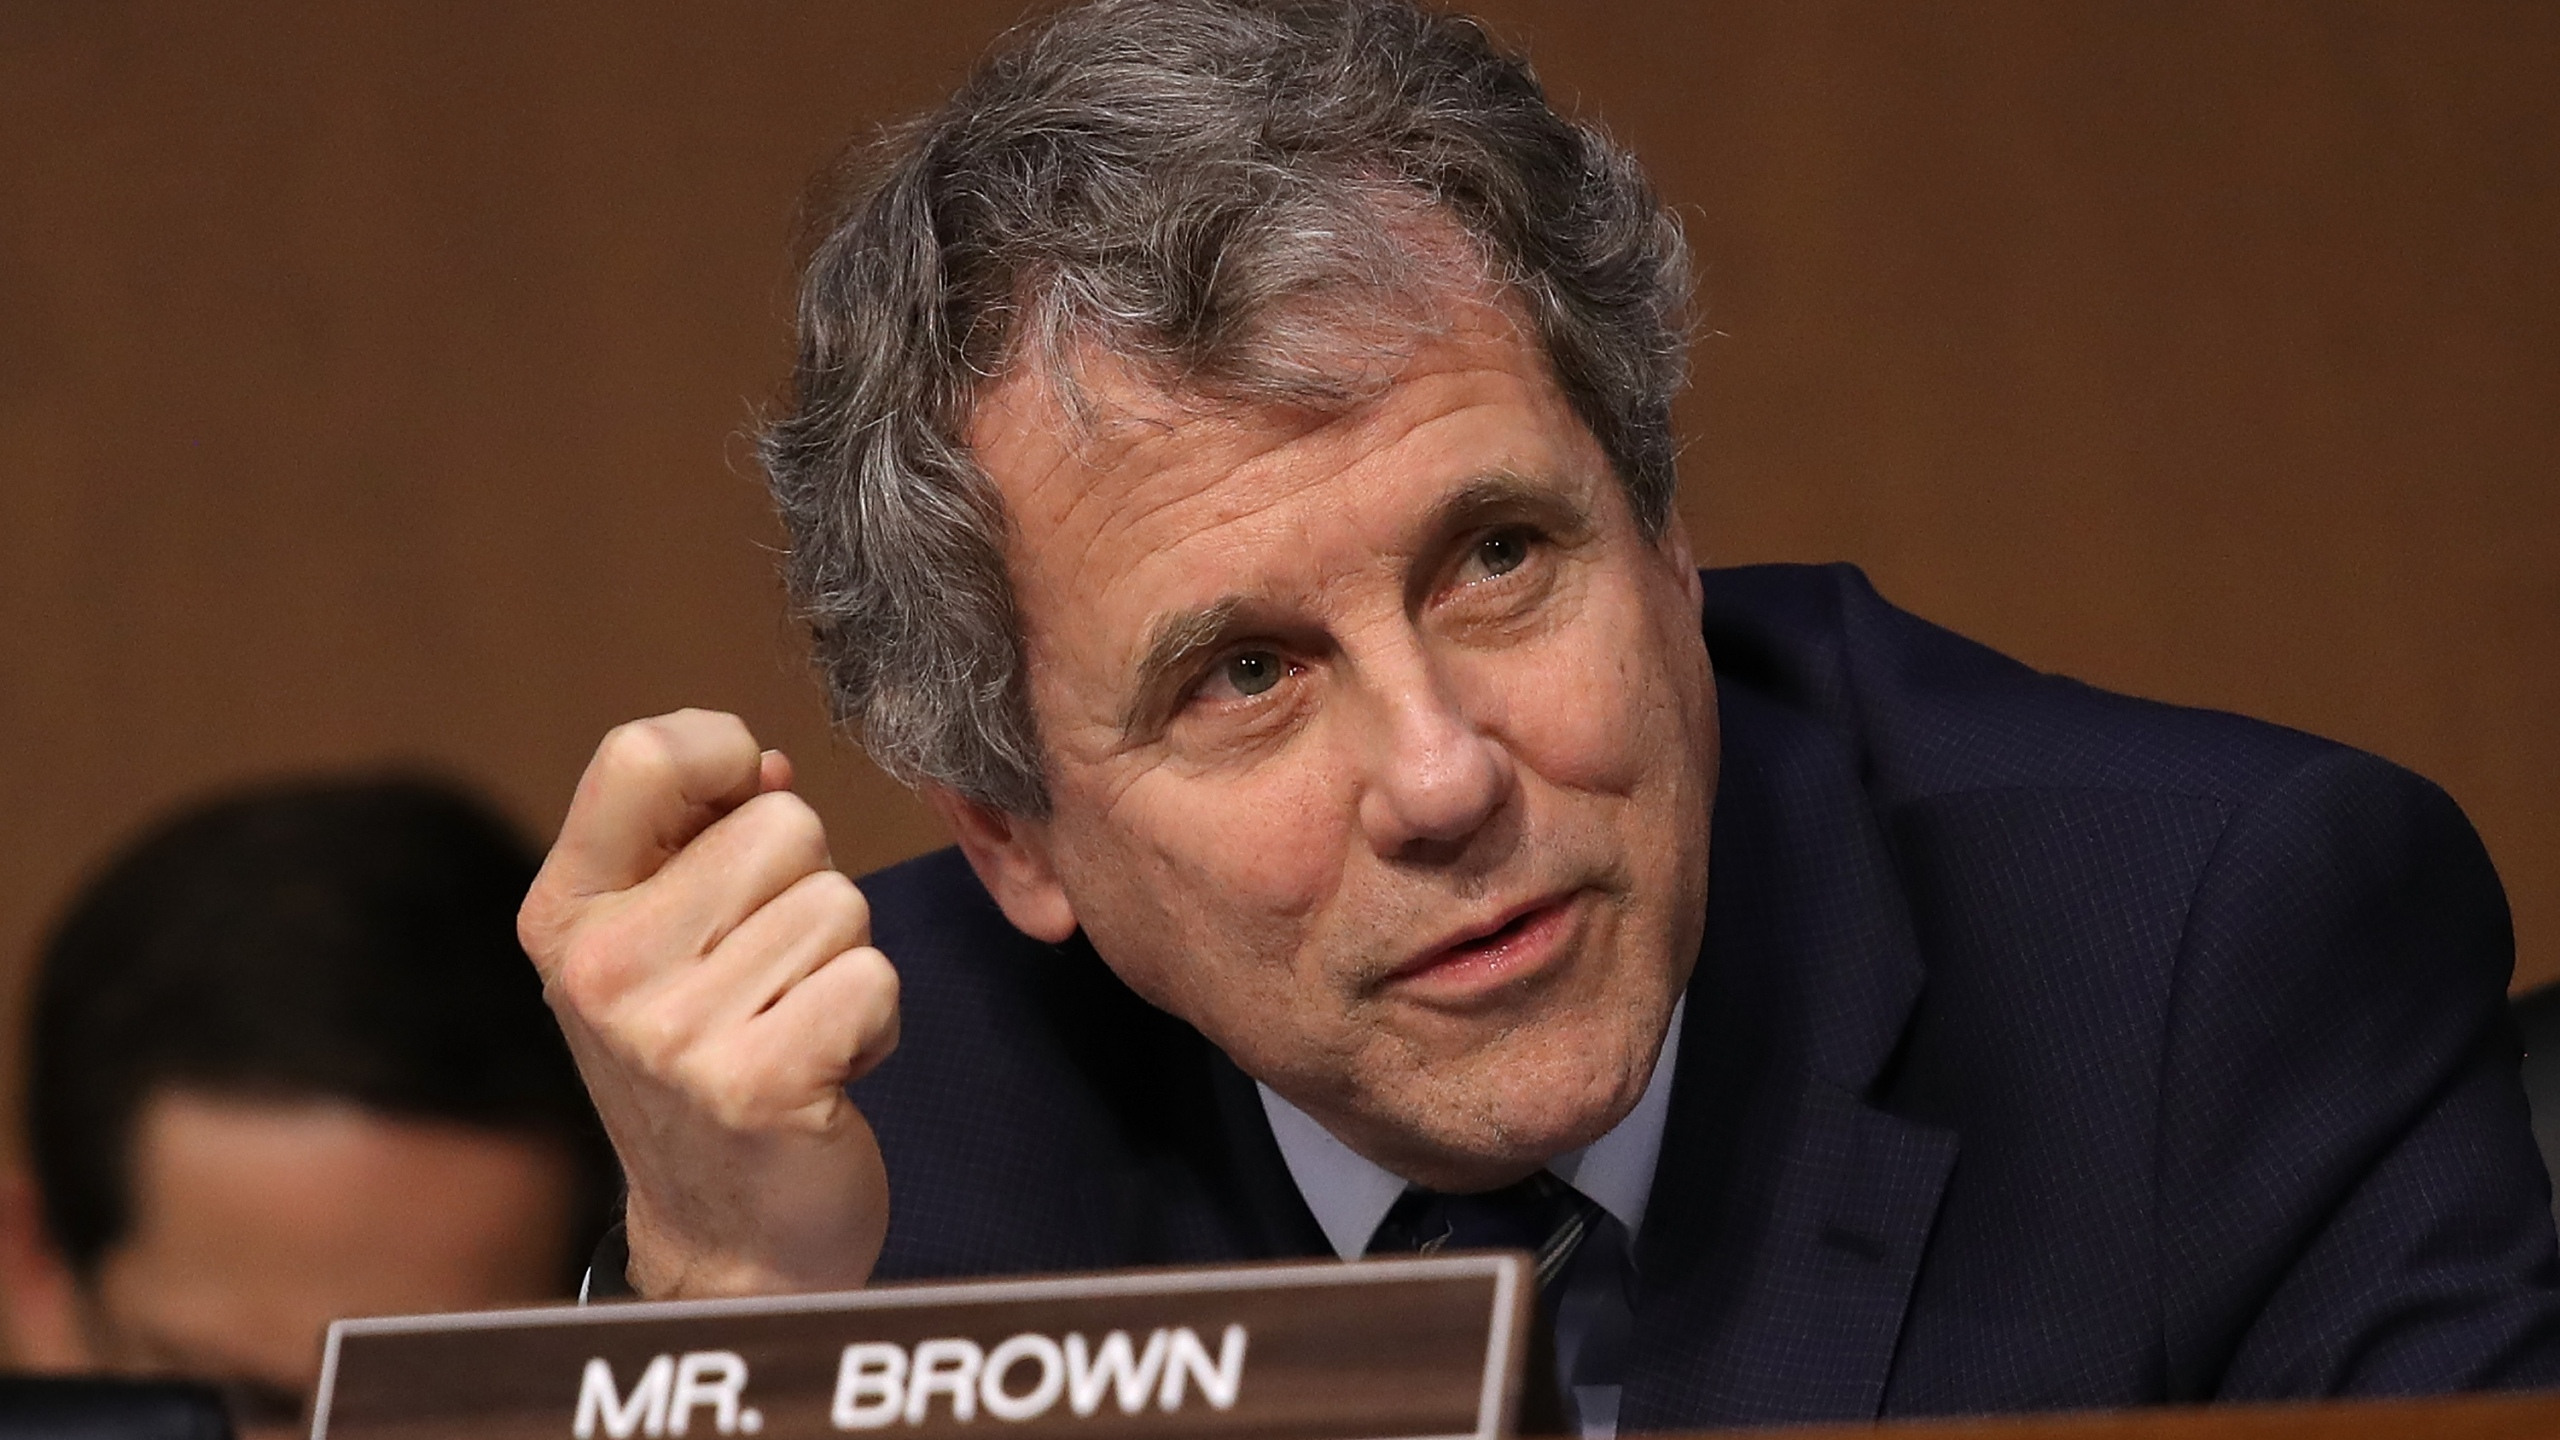 Sen. Sherrod Brown (D-OH) speaks during a markup of the Republican tax reform proposal Nov. 14, 2017, in Washington, D.C. (Credit: Win McNamee/Getty Images)